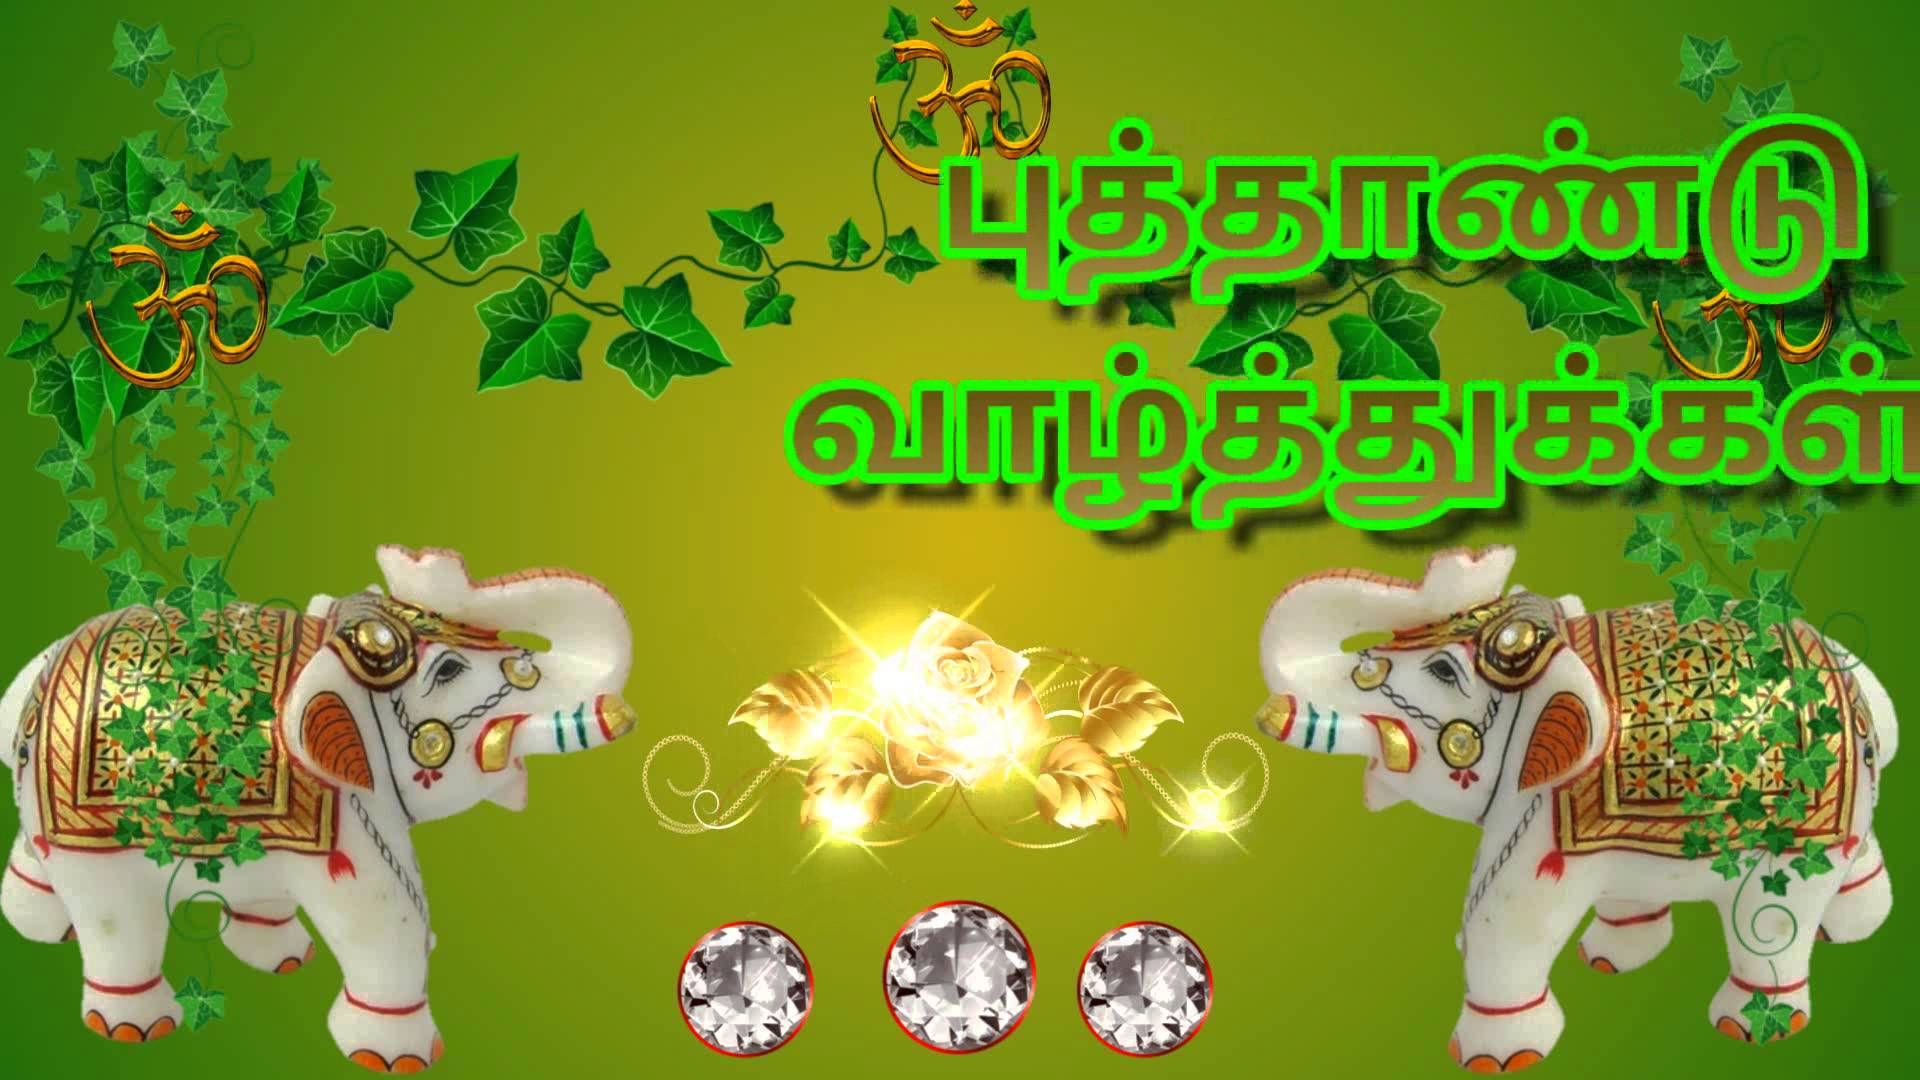 Happy tamil new year 2016 puthandu 2016 puthandu animation happy tamil new year 2016 puthandu 2016 puthandu animation puthandu w kristyandbryce Image collections